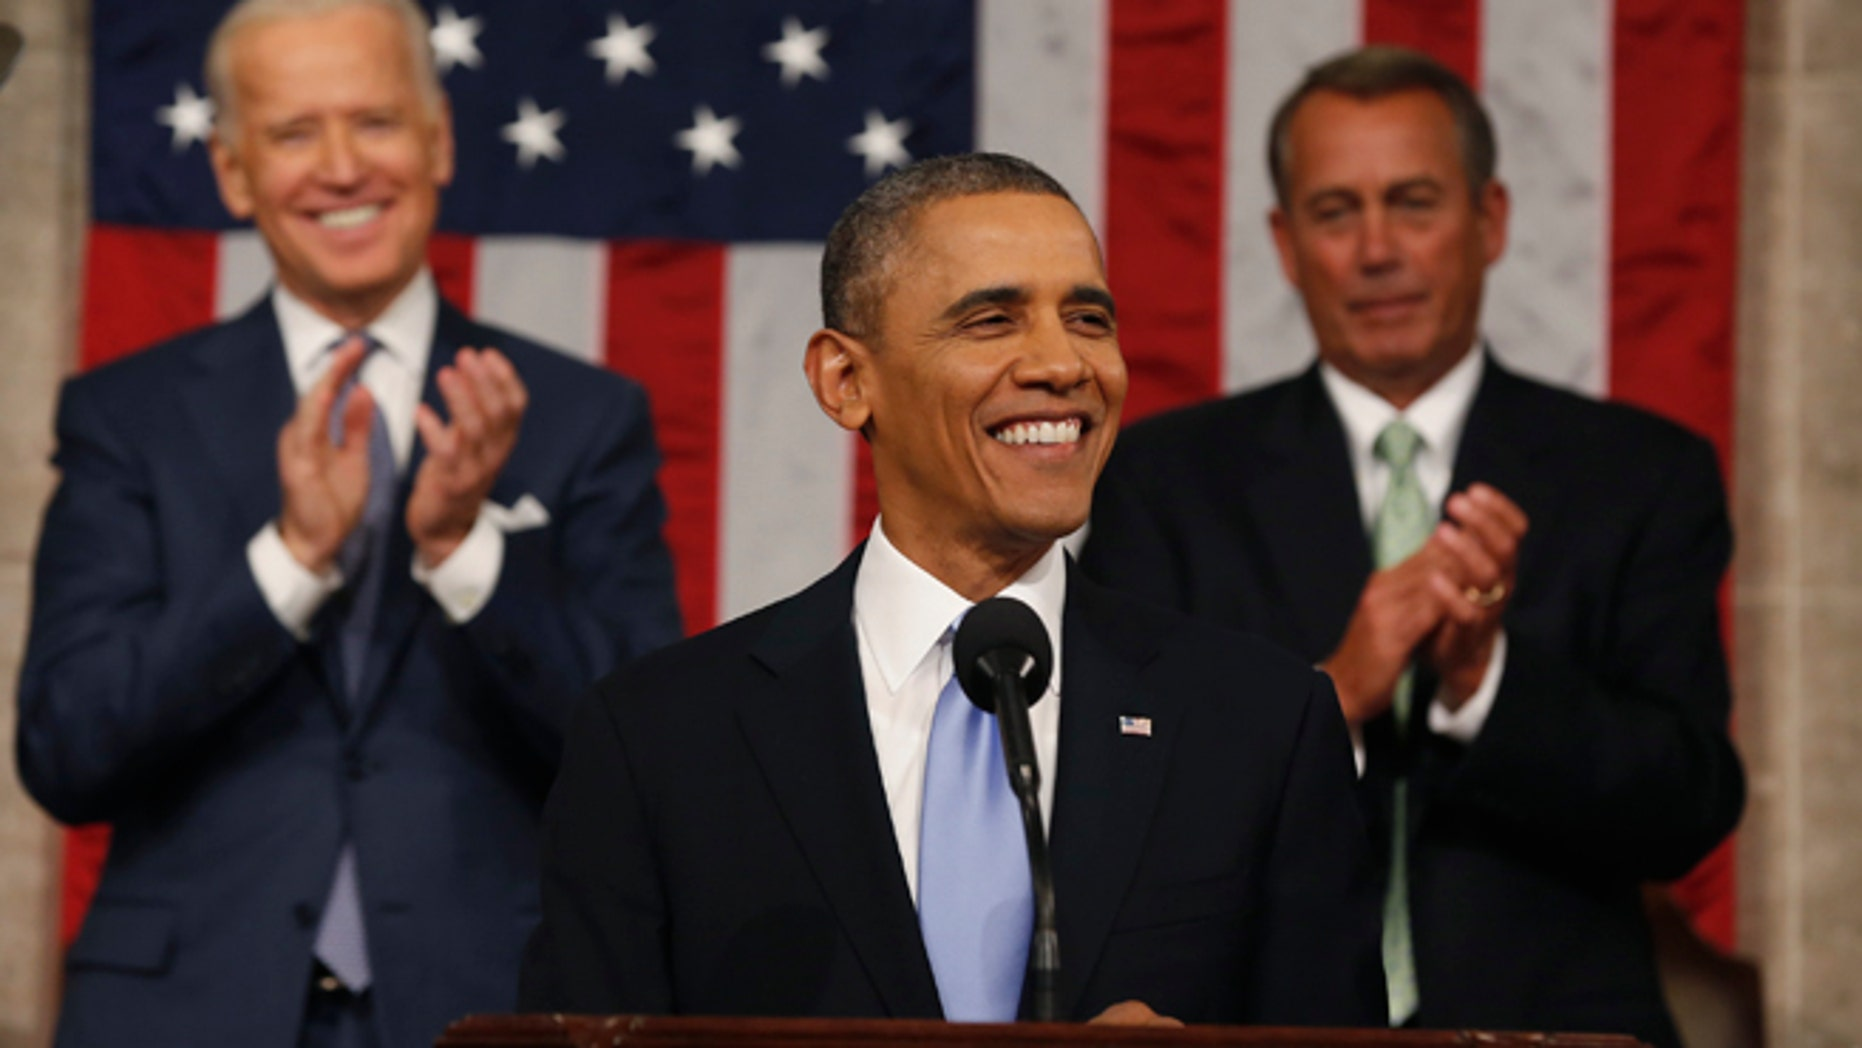 Vice President Joe Biden (L) and Speaker of the House John Boehner applaud as President Barack Obama finishes his State of the Union speech on Capitol Hill in Washington, January 28, 2014.